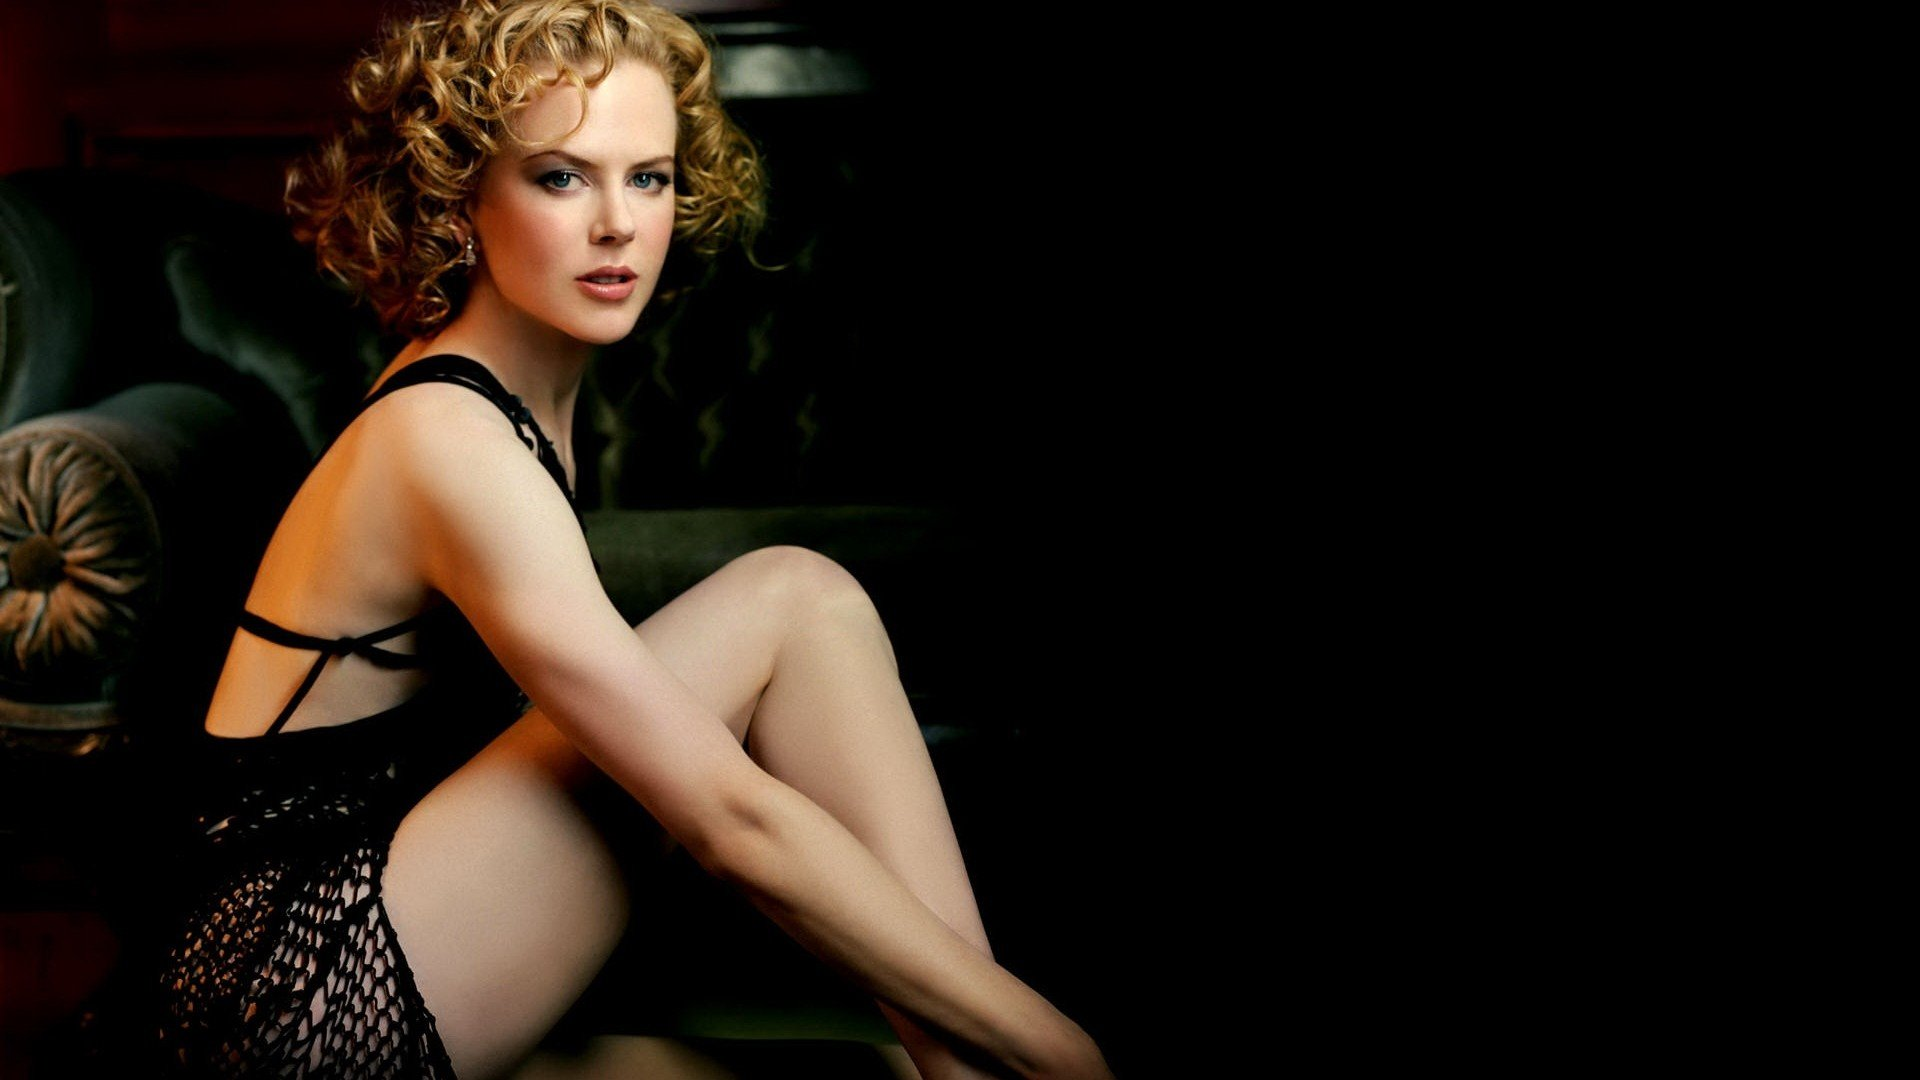 High resolution Nicole Kidman full hd 1920x1080 background ID:438257 for computer